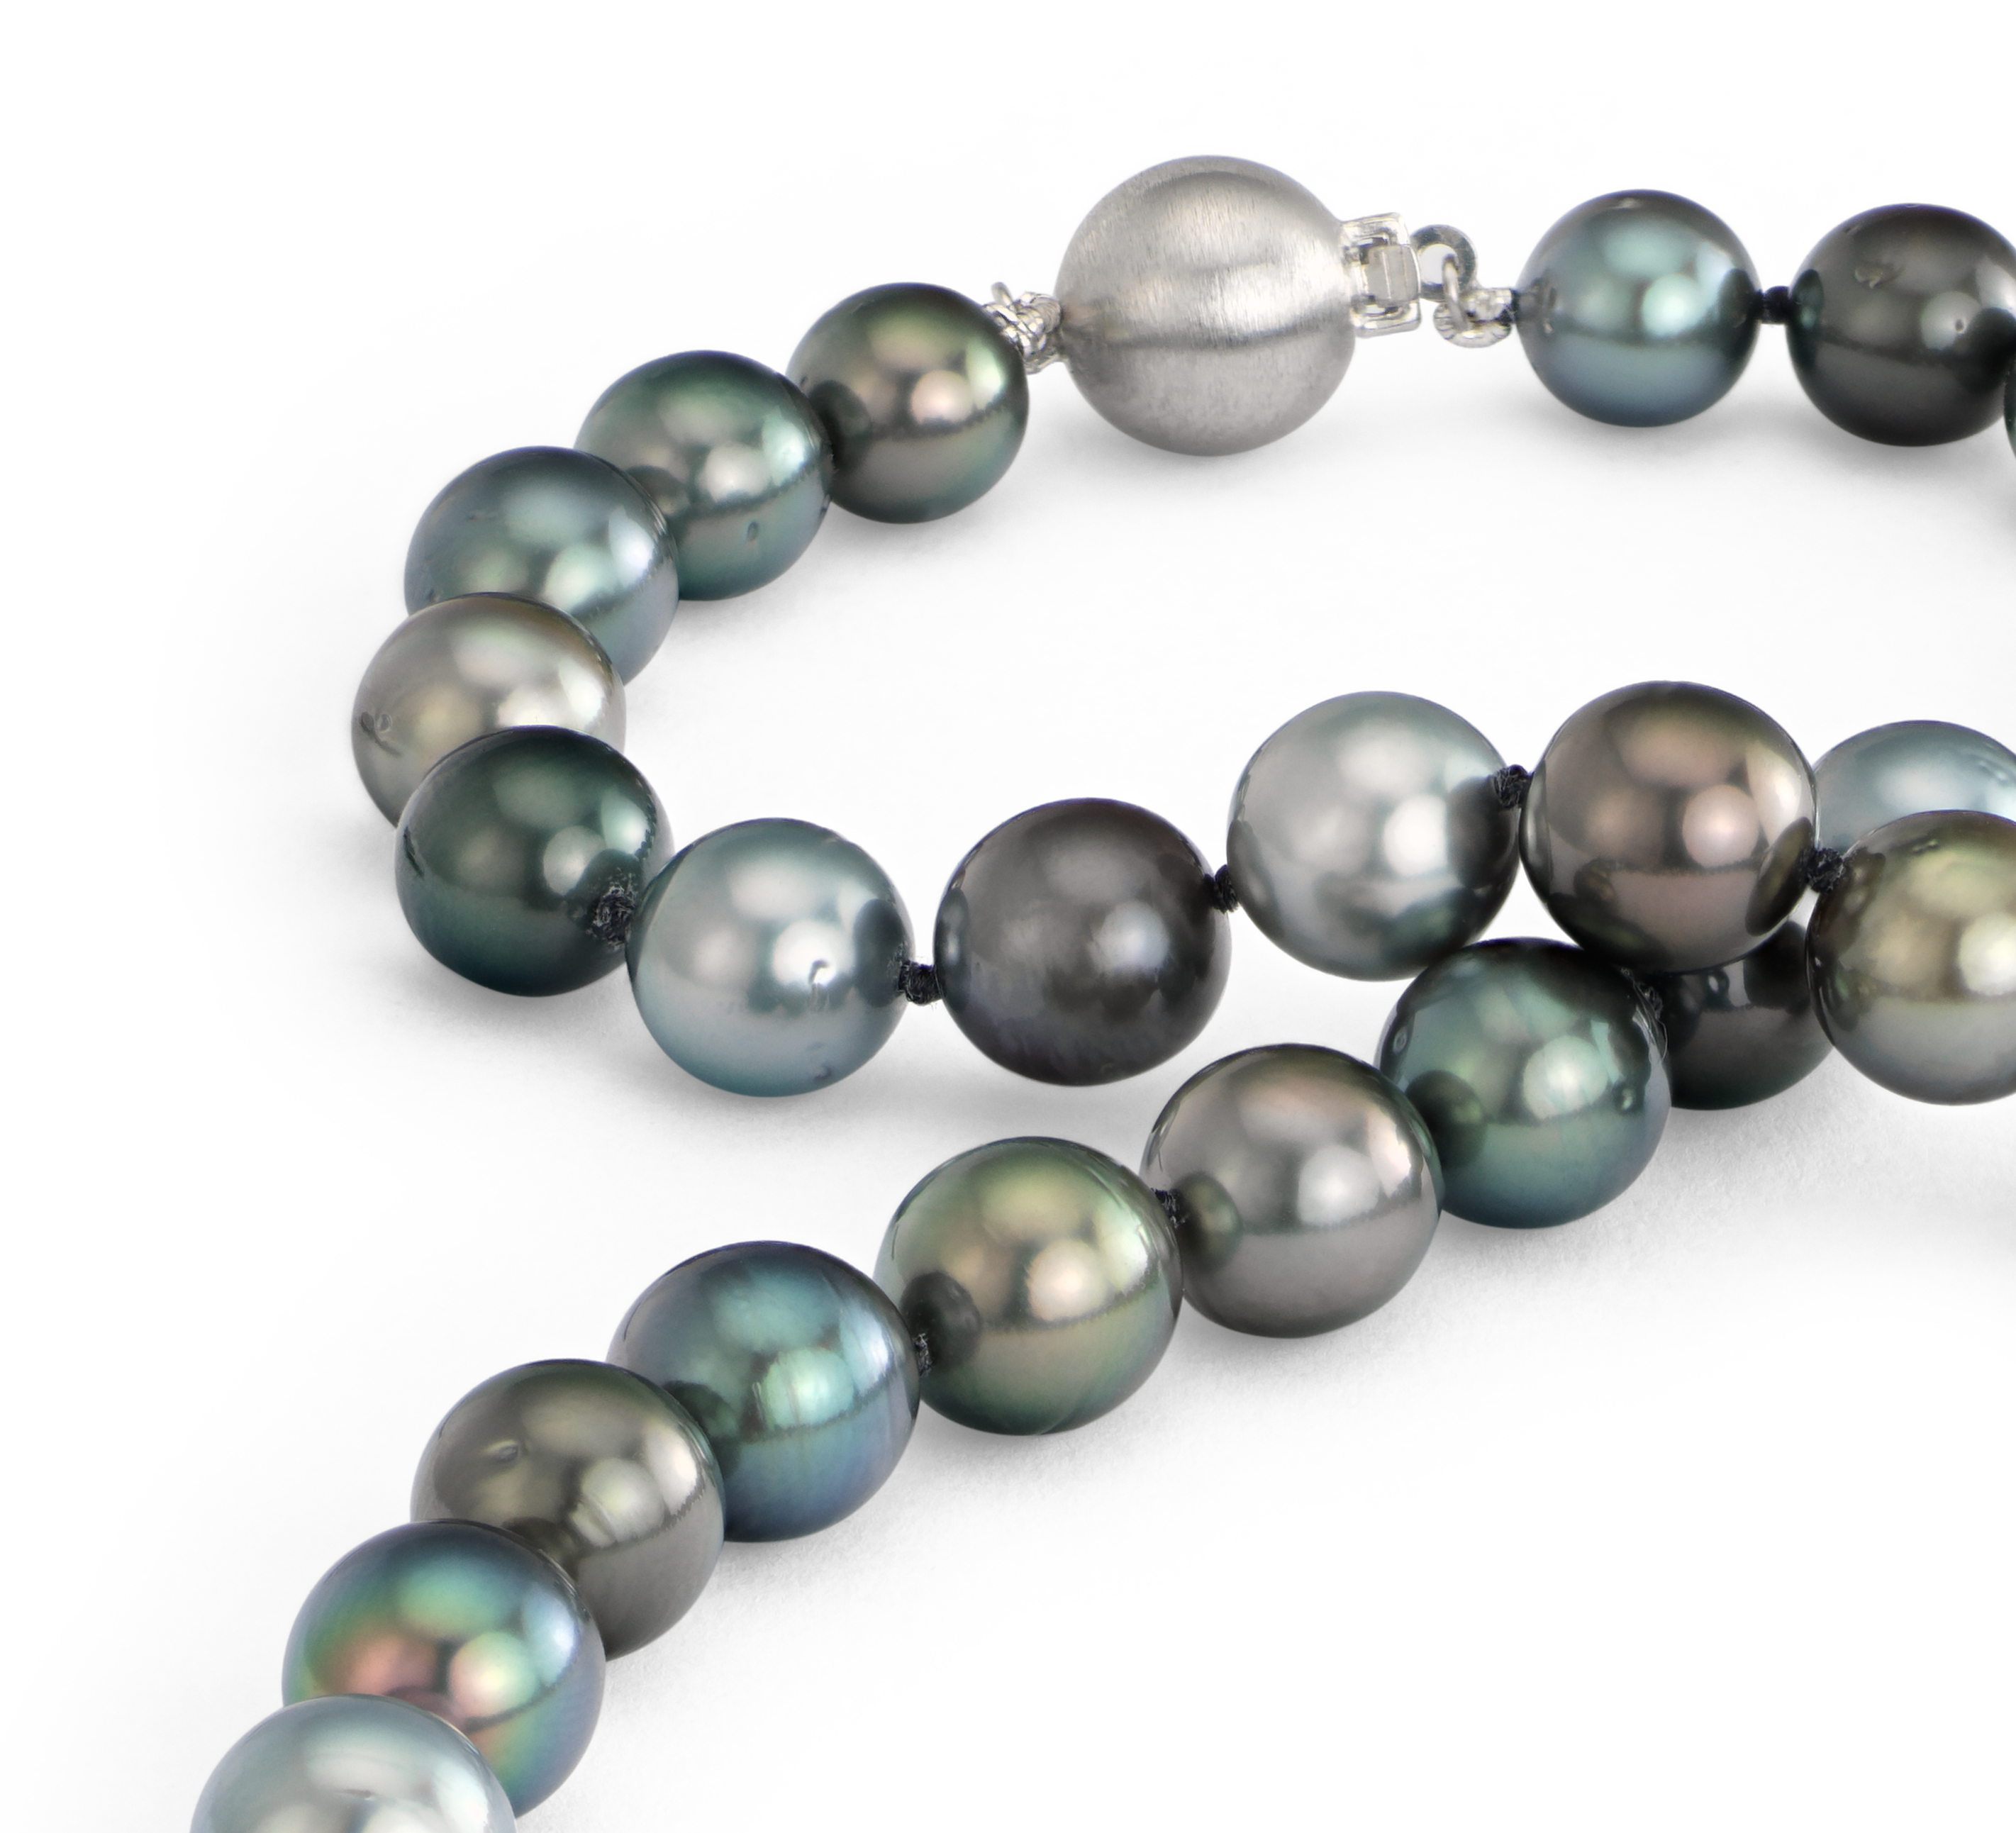 Multi-Color Tahitian Cultured Pearl Necklace in 18k White Gold (8.0-10.5mm)